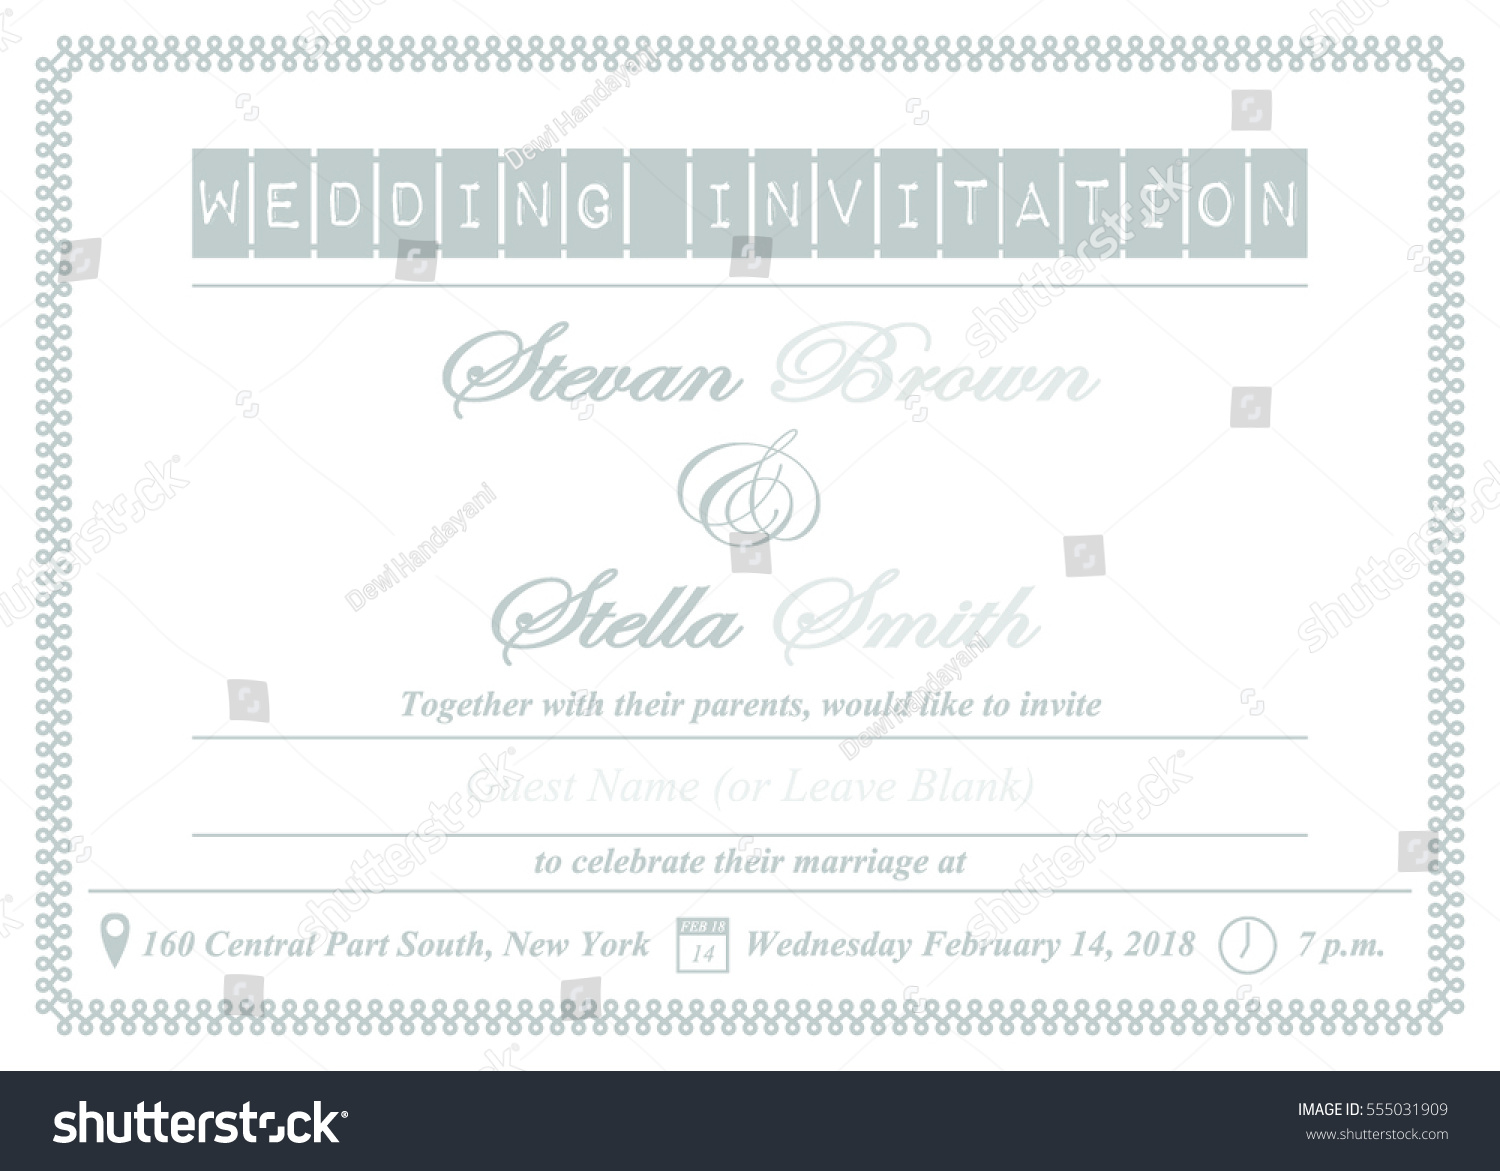 Elegant Wedding Invitation Template Recommended Silver Stock Vector ...